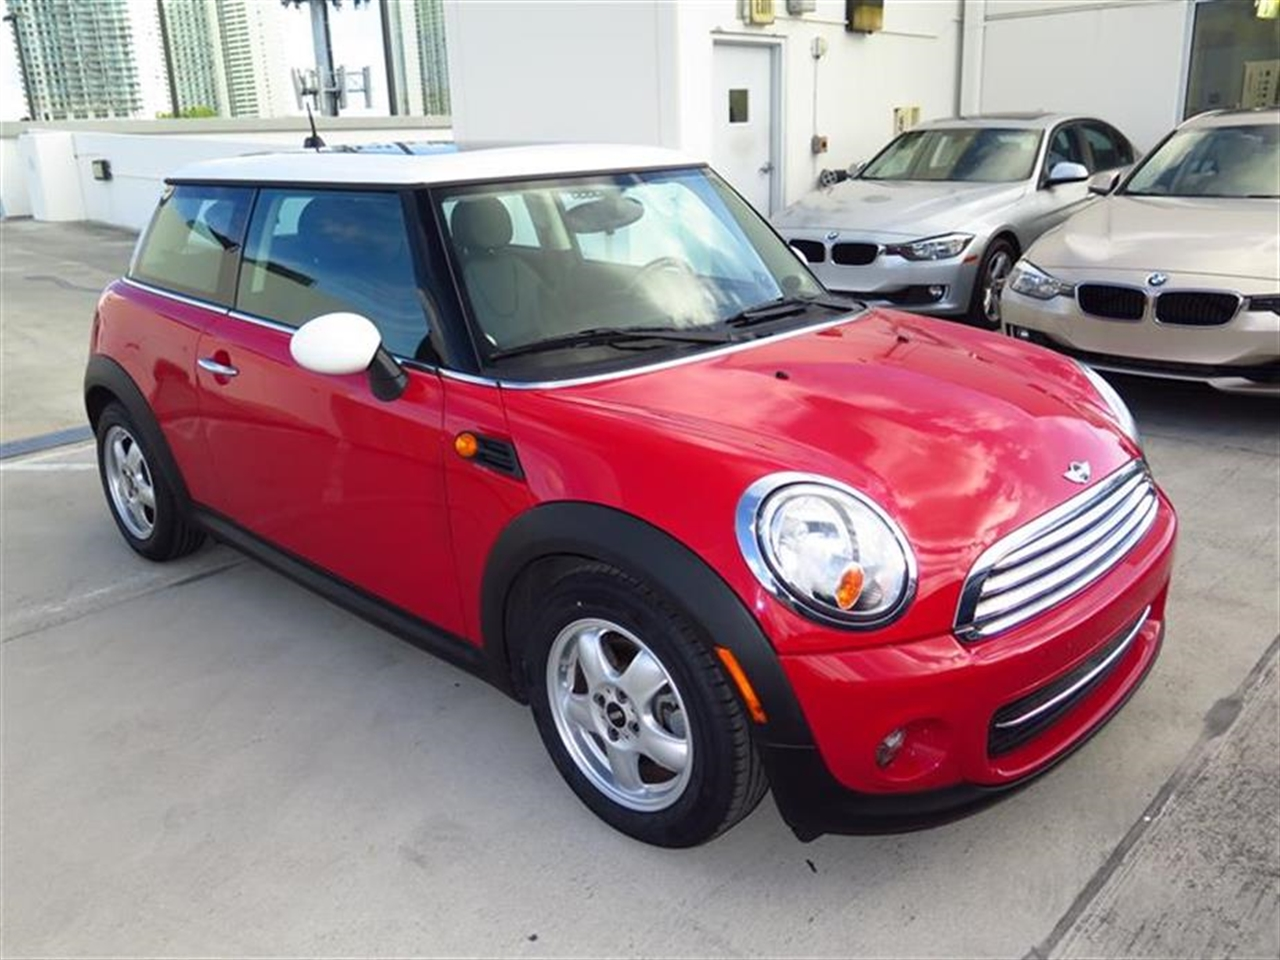 2011 MINI COOPER HARDTOP 2dr Cpe 26922 miles 1 rear cup holder 12V auxiliary pwr outlet in cock